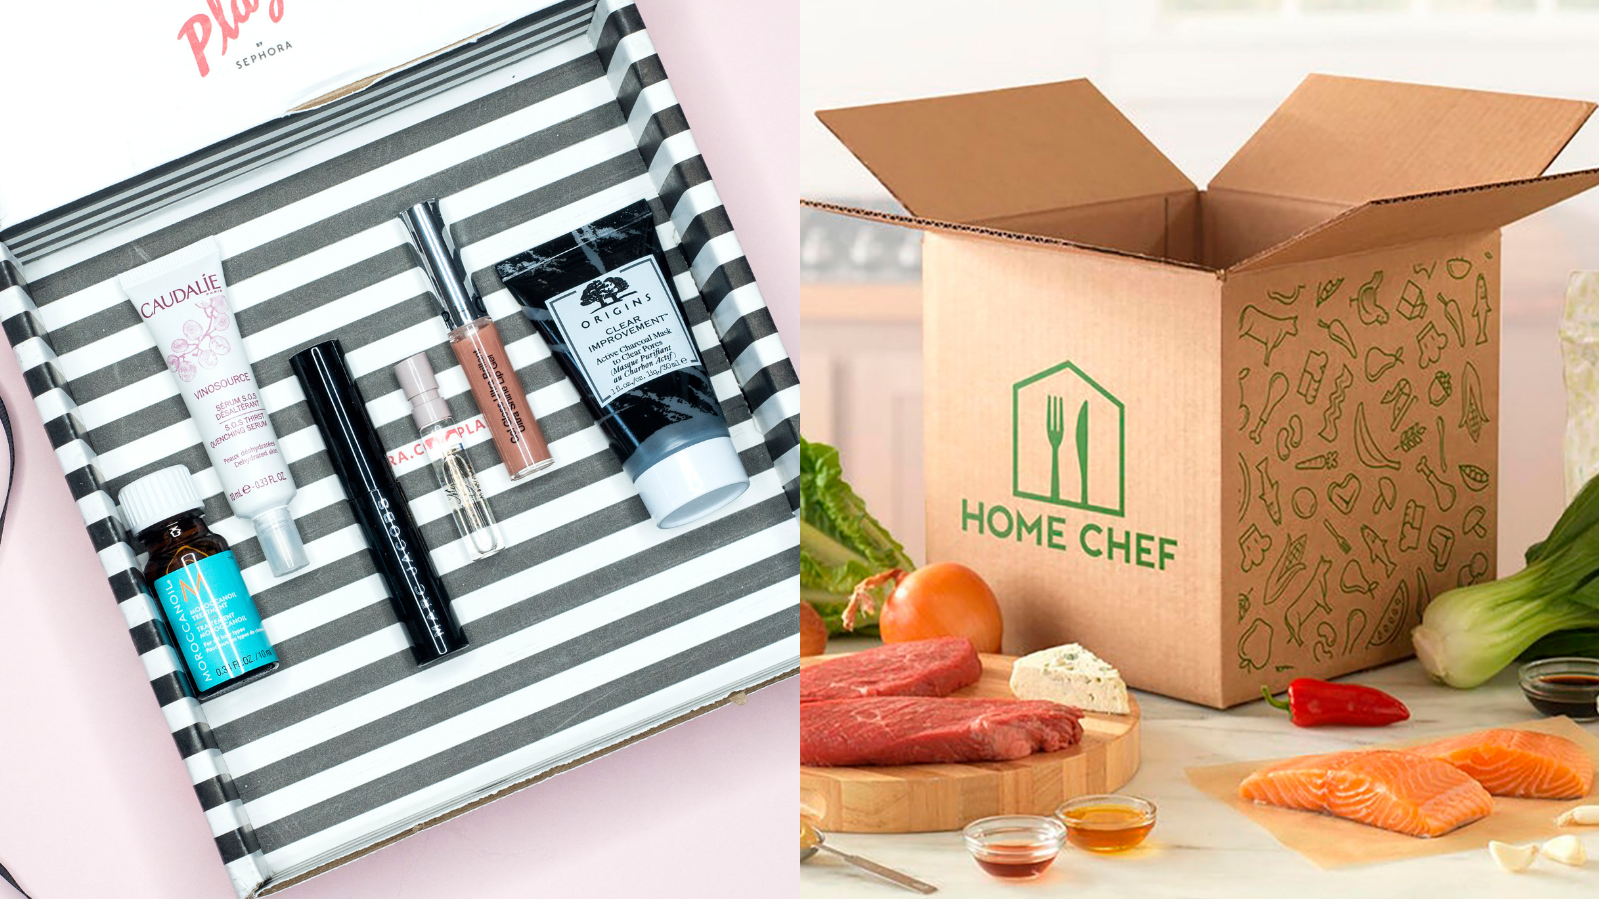 Subscription boxes make great gifts, as long as you get the best ones.